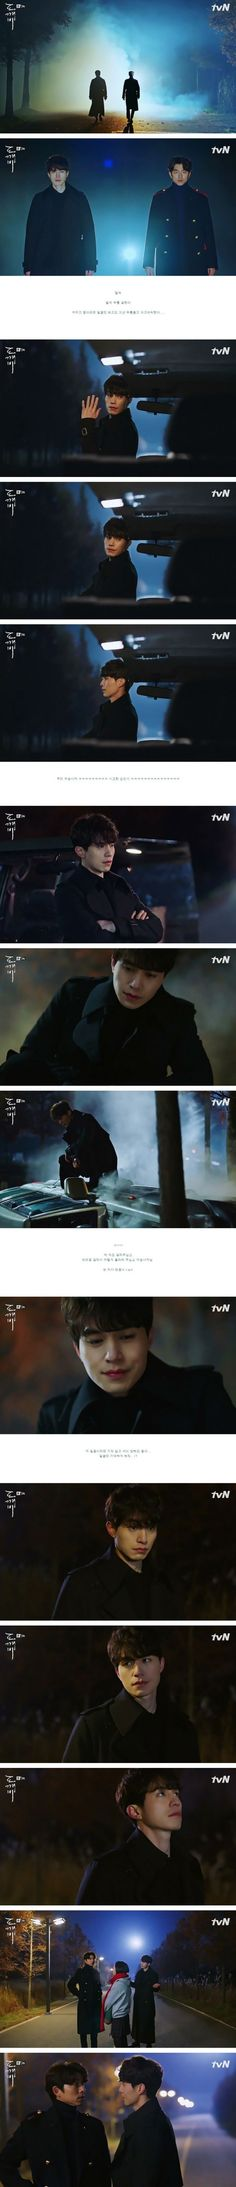 [Spoiler] Added episodes 3 and 4 captures for the #kdrama 'Goblin'